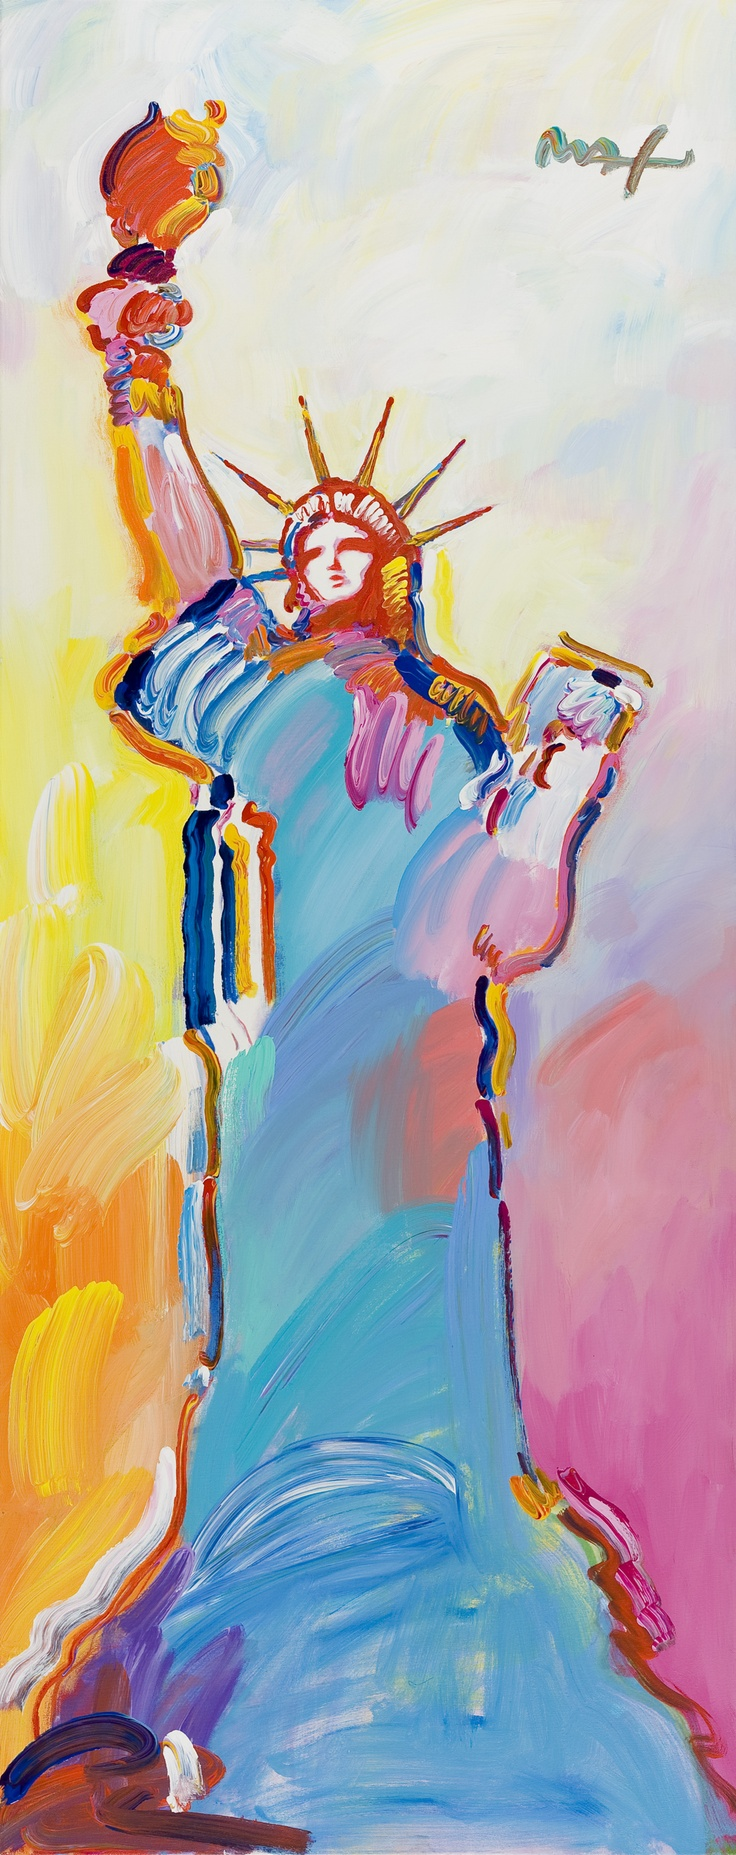 The Picaso of our era Peter Max-- this is the painting I have for the new house :) will match the chandelier perfect!